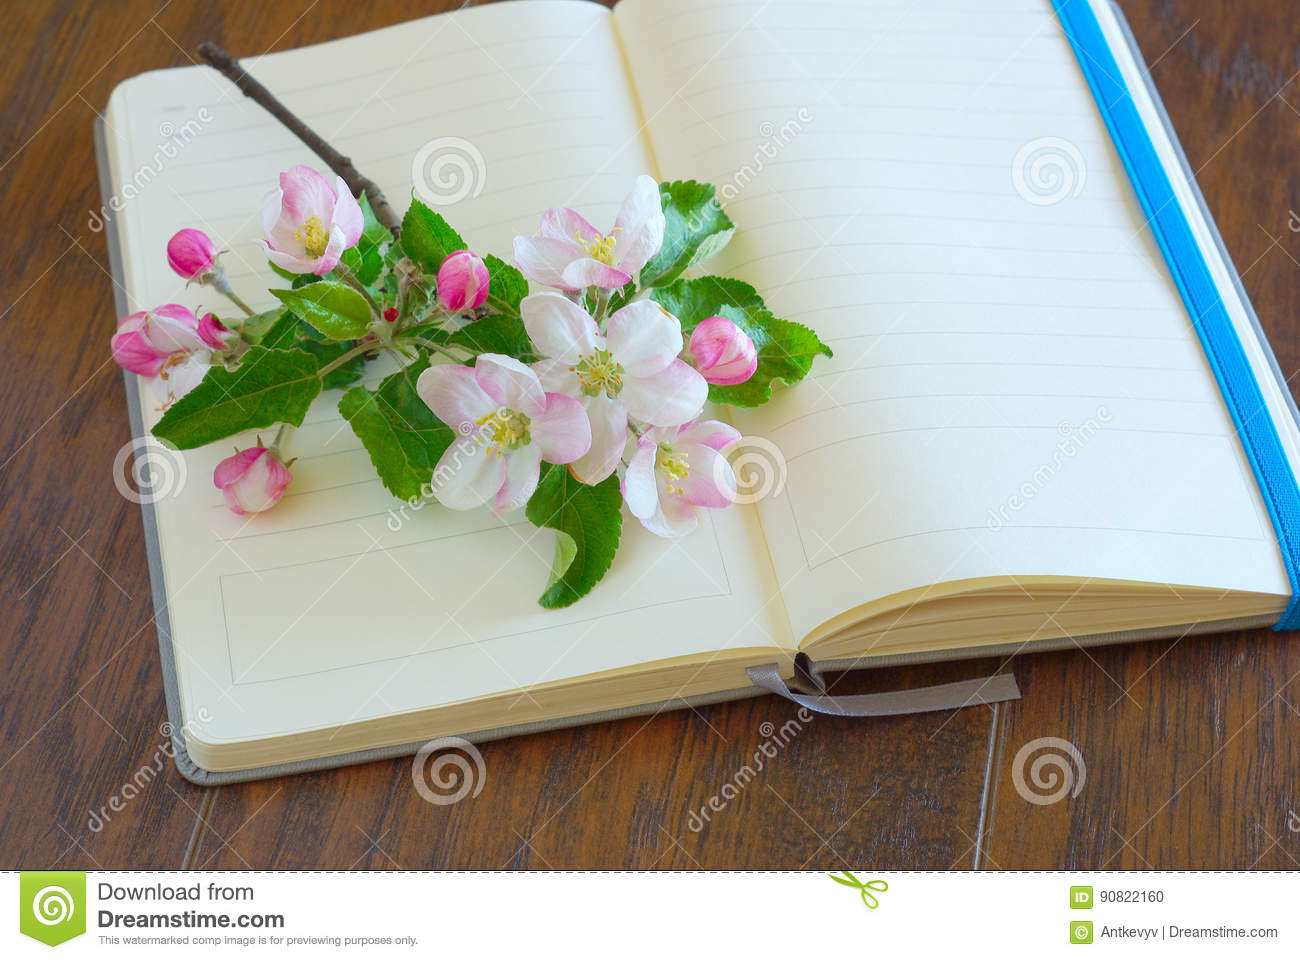 Flower blossom lyrics diary stock photo image of notes express download flower blossom lyrics diary stock photo image of notes express 90822160 mightylinksfo